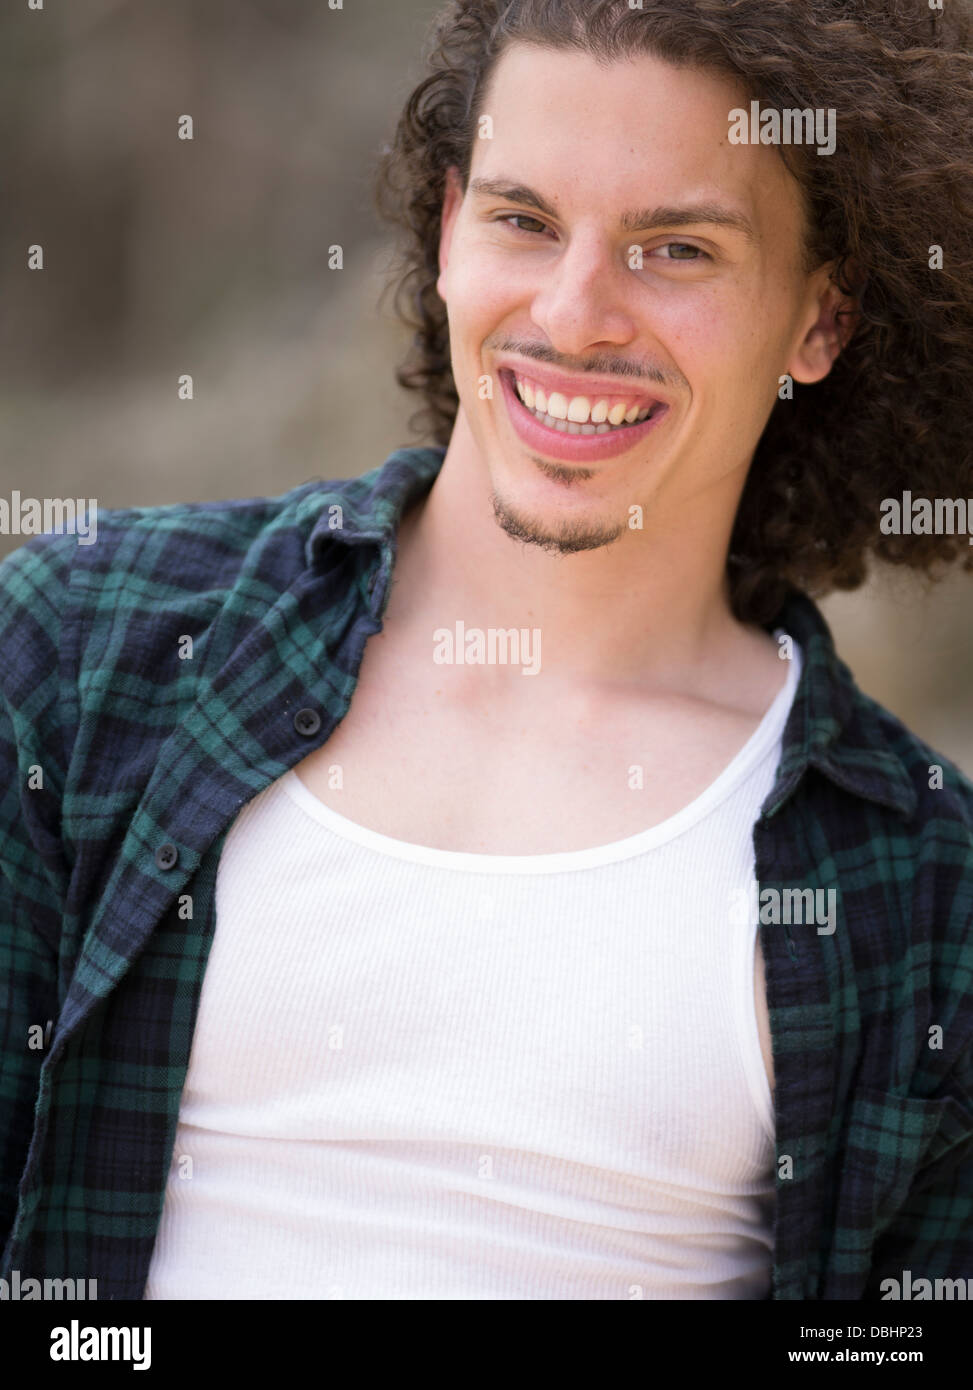 Egyptian American Man with long wavy hair beard and mustache smiling wearing check shirt and white t-shirt - Stock Image